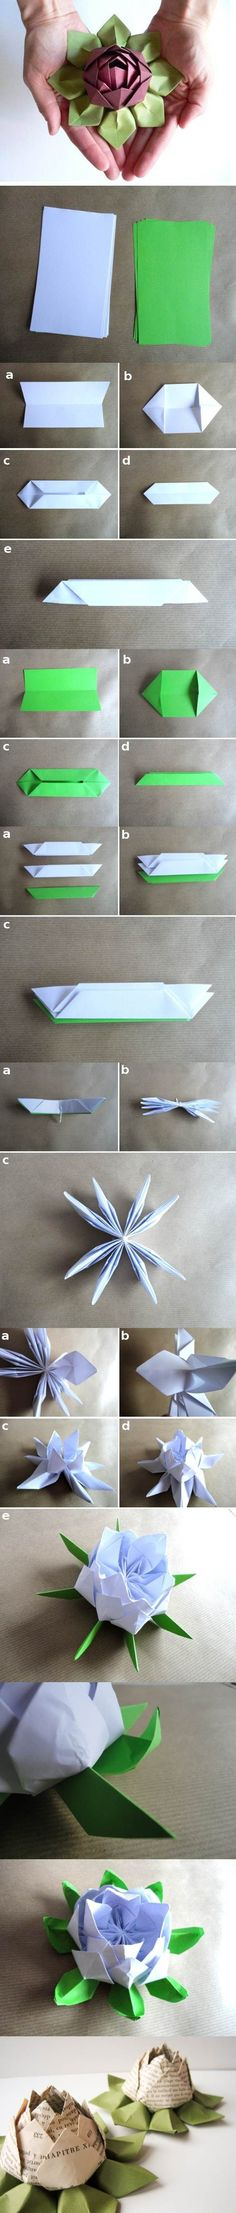 DIY Origami Lotus Flower | iCreativeIdeas.comCool!